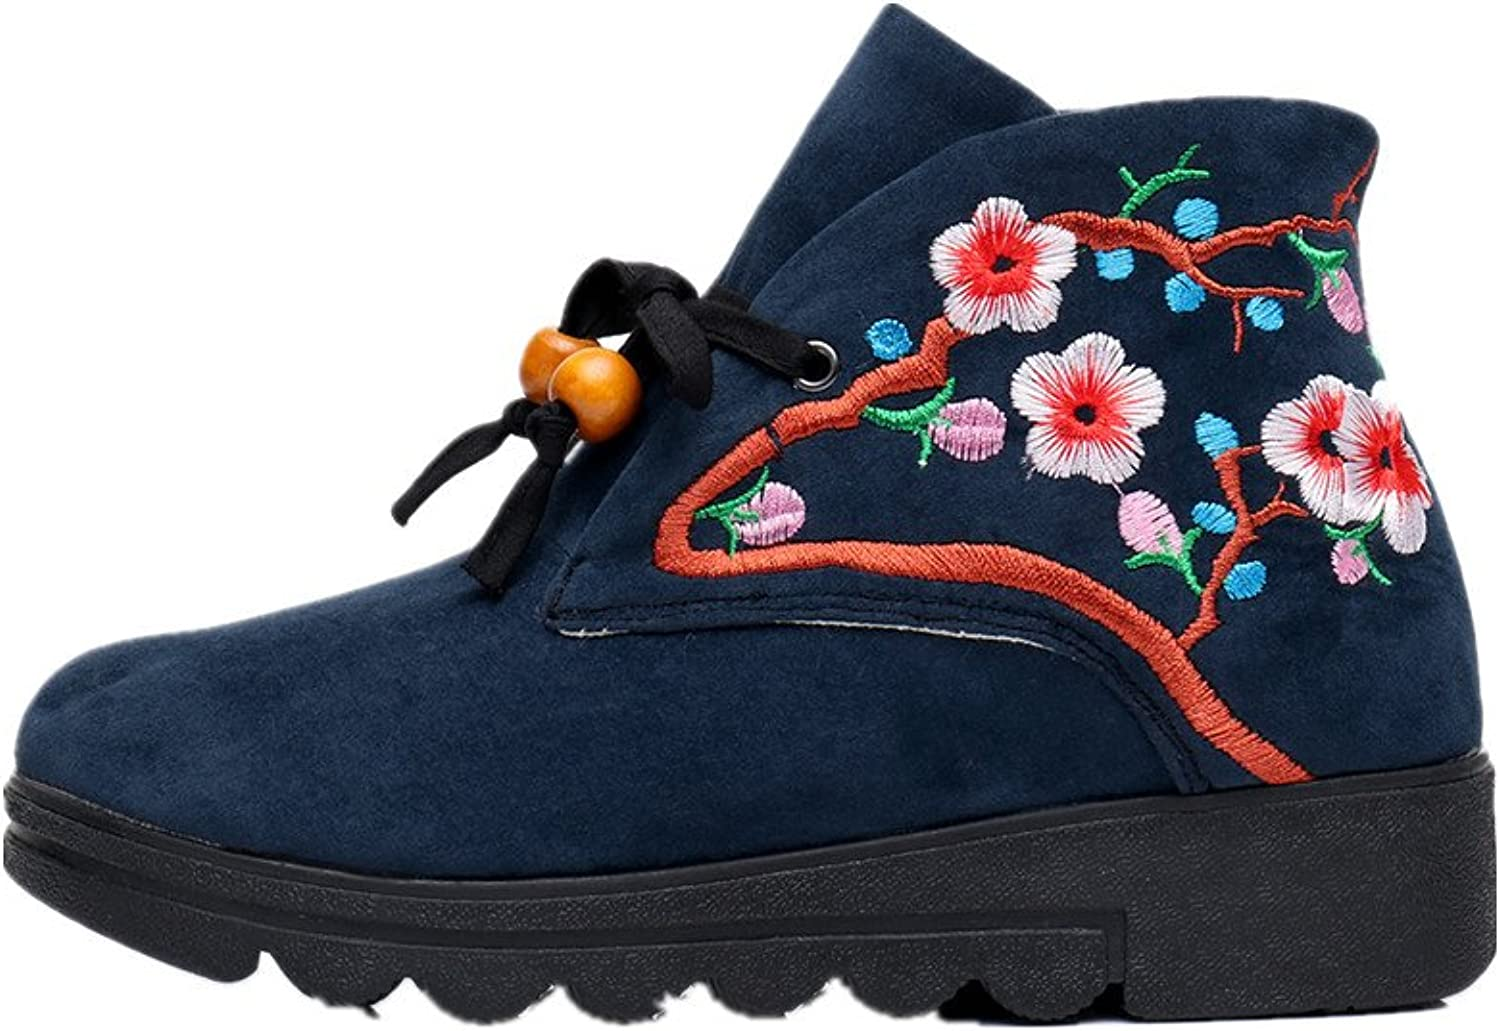 Tianrui Crown Women and Ladies The Peach Blossom Embroidery Short Ankle Boot shoes